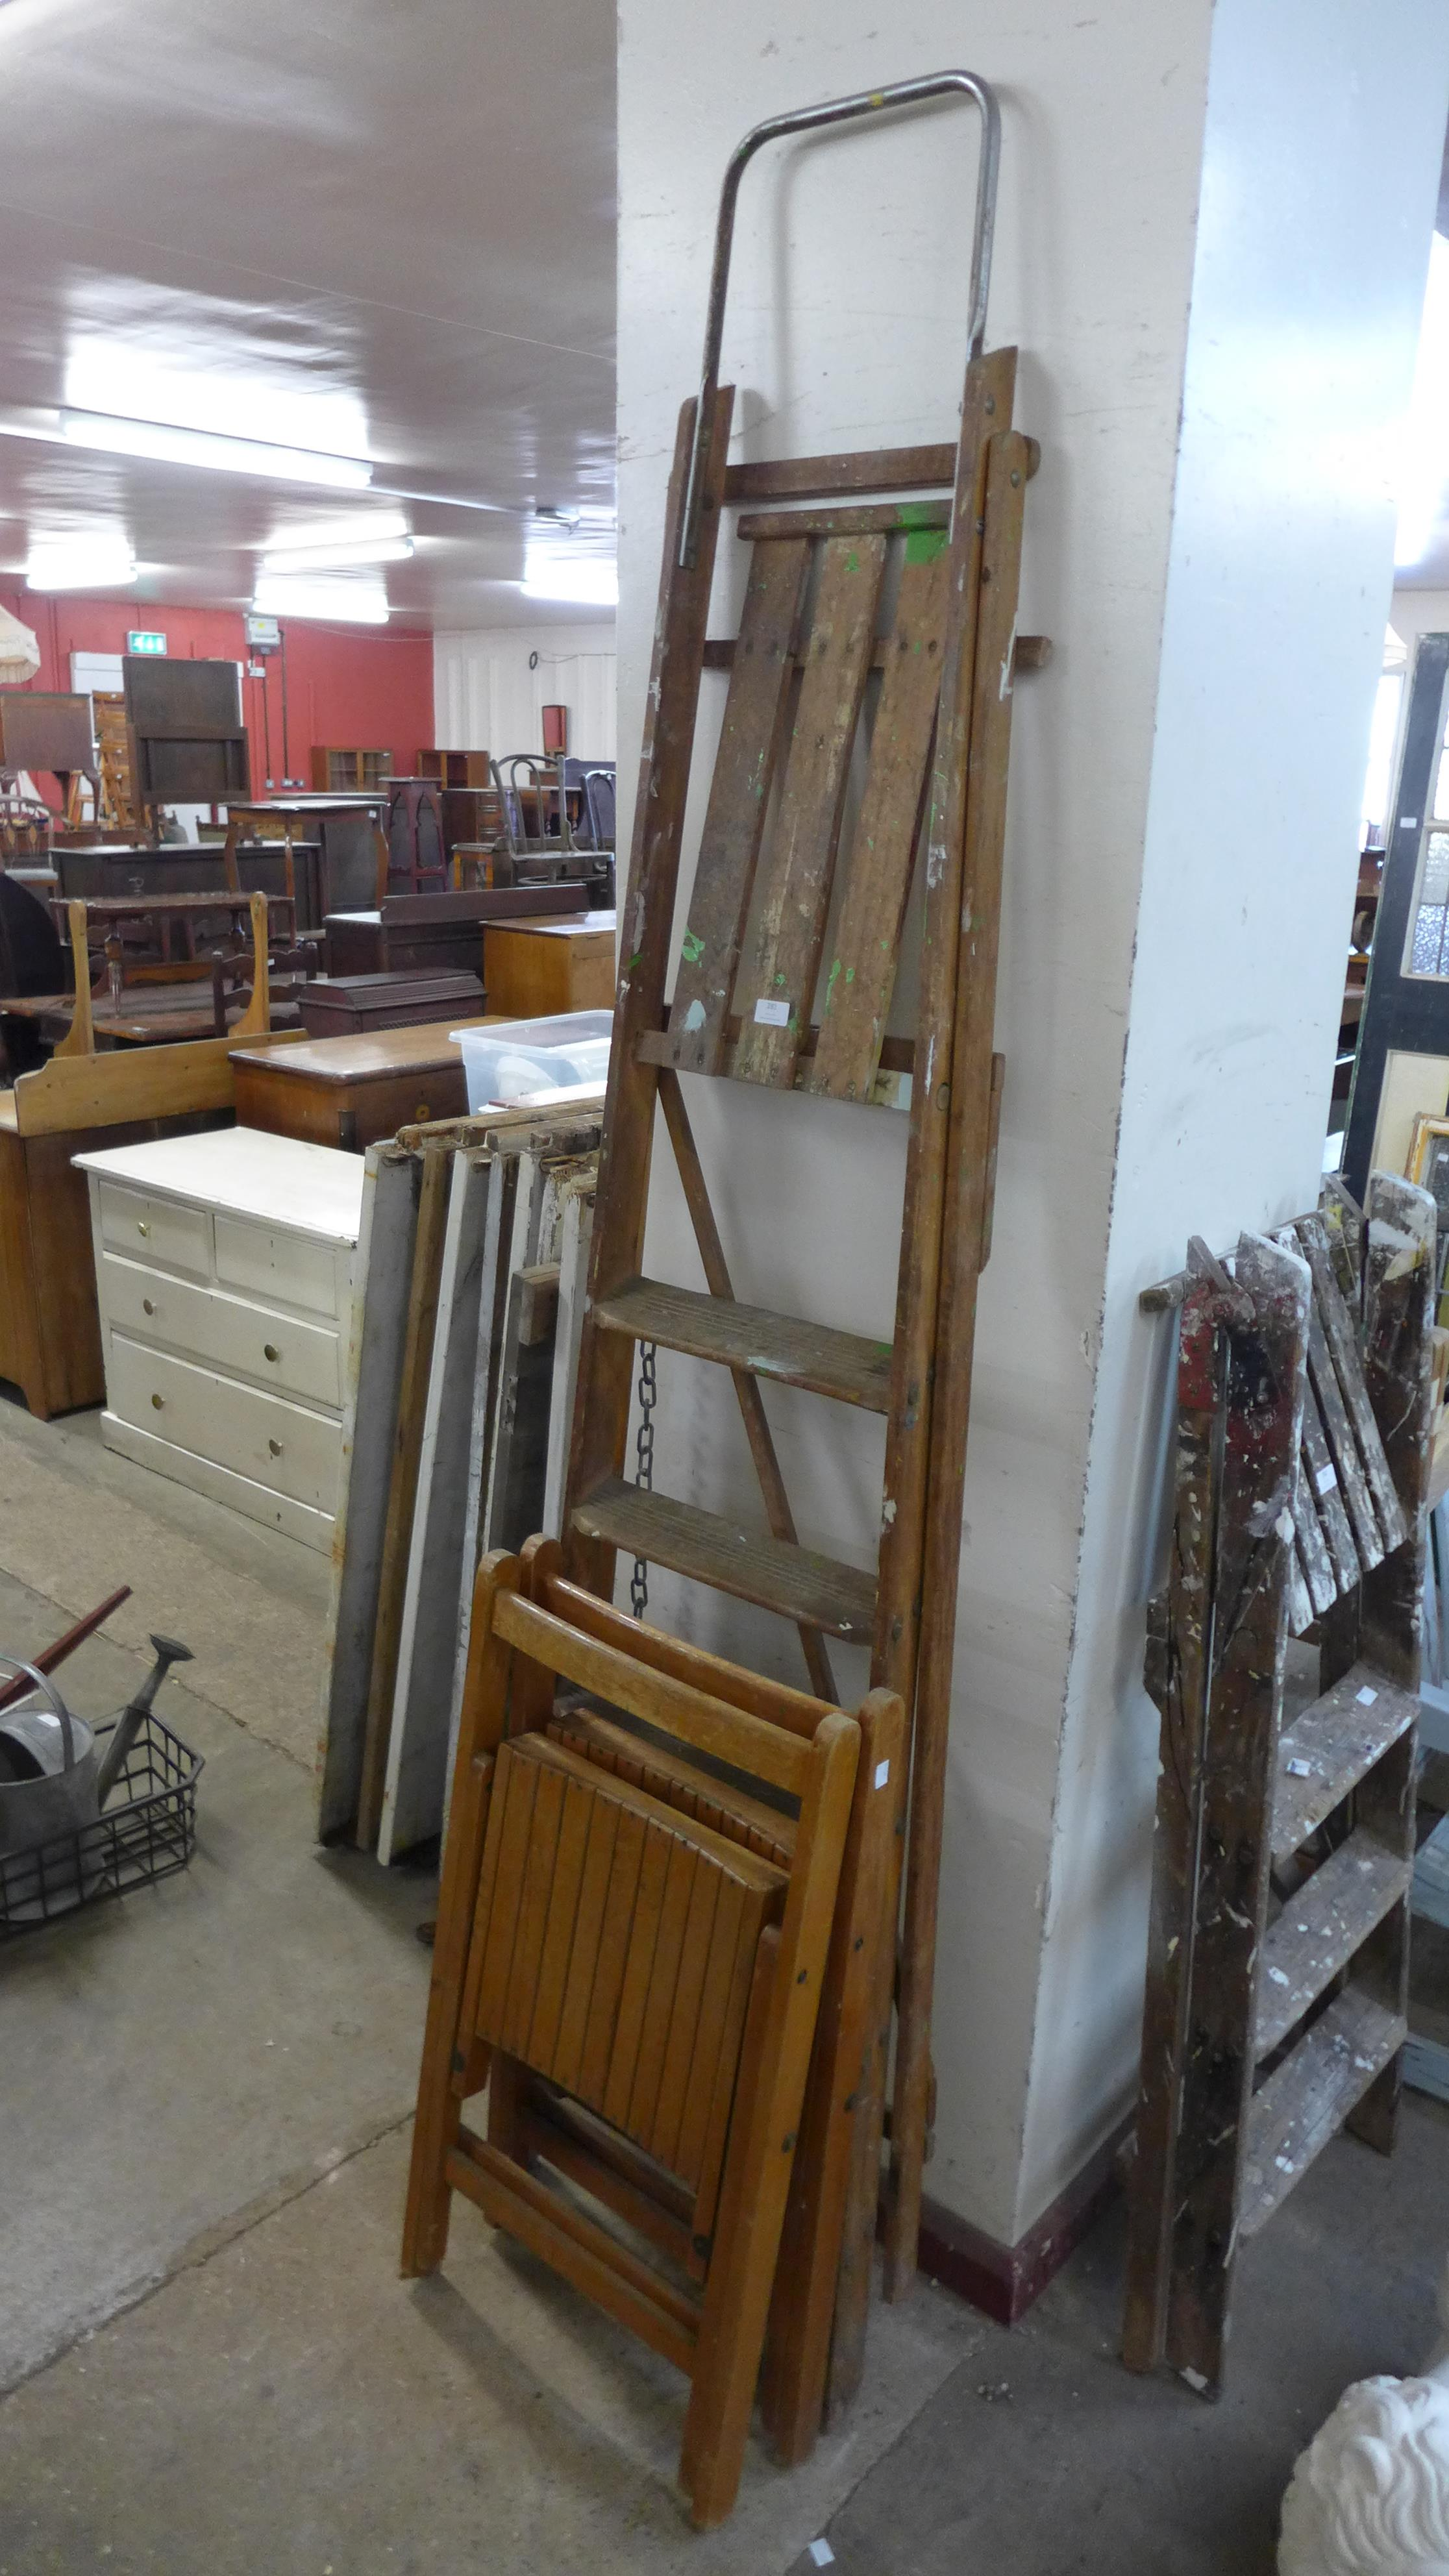 A set of stepladders and two folding chairs